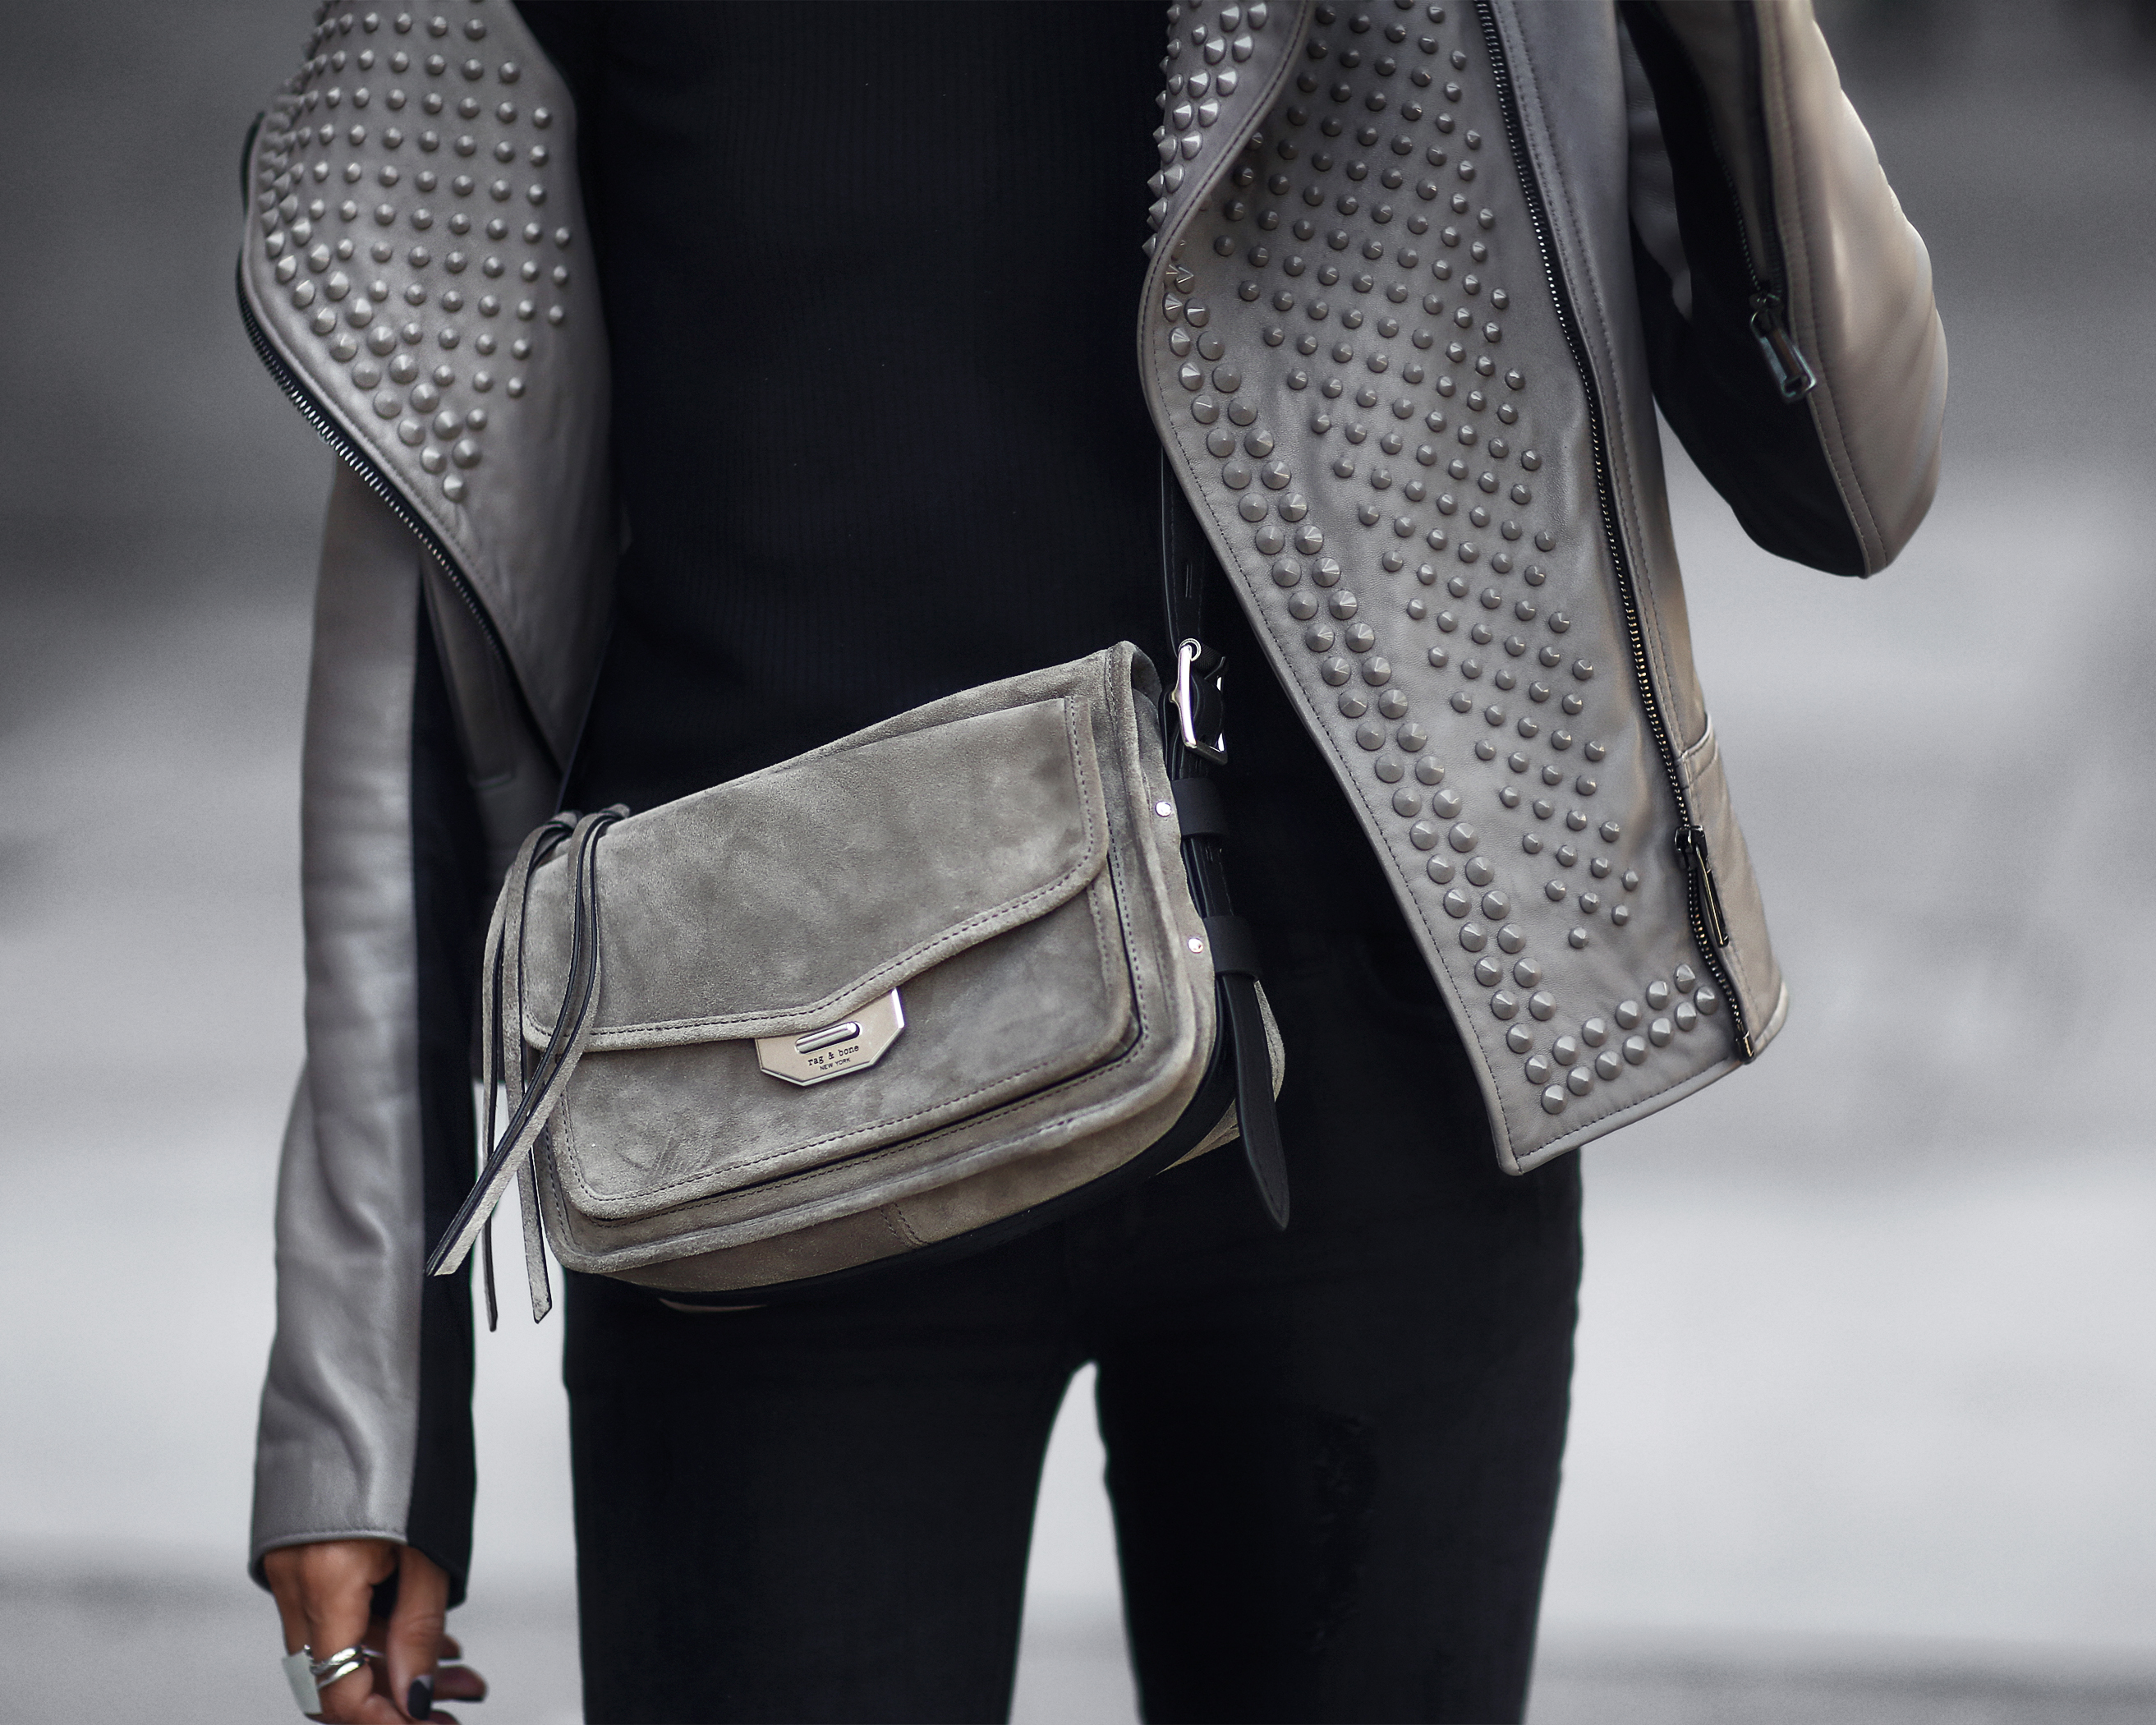 cold shoulder top, leather jacket, crossbody bag